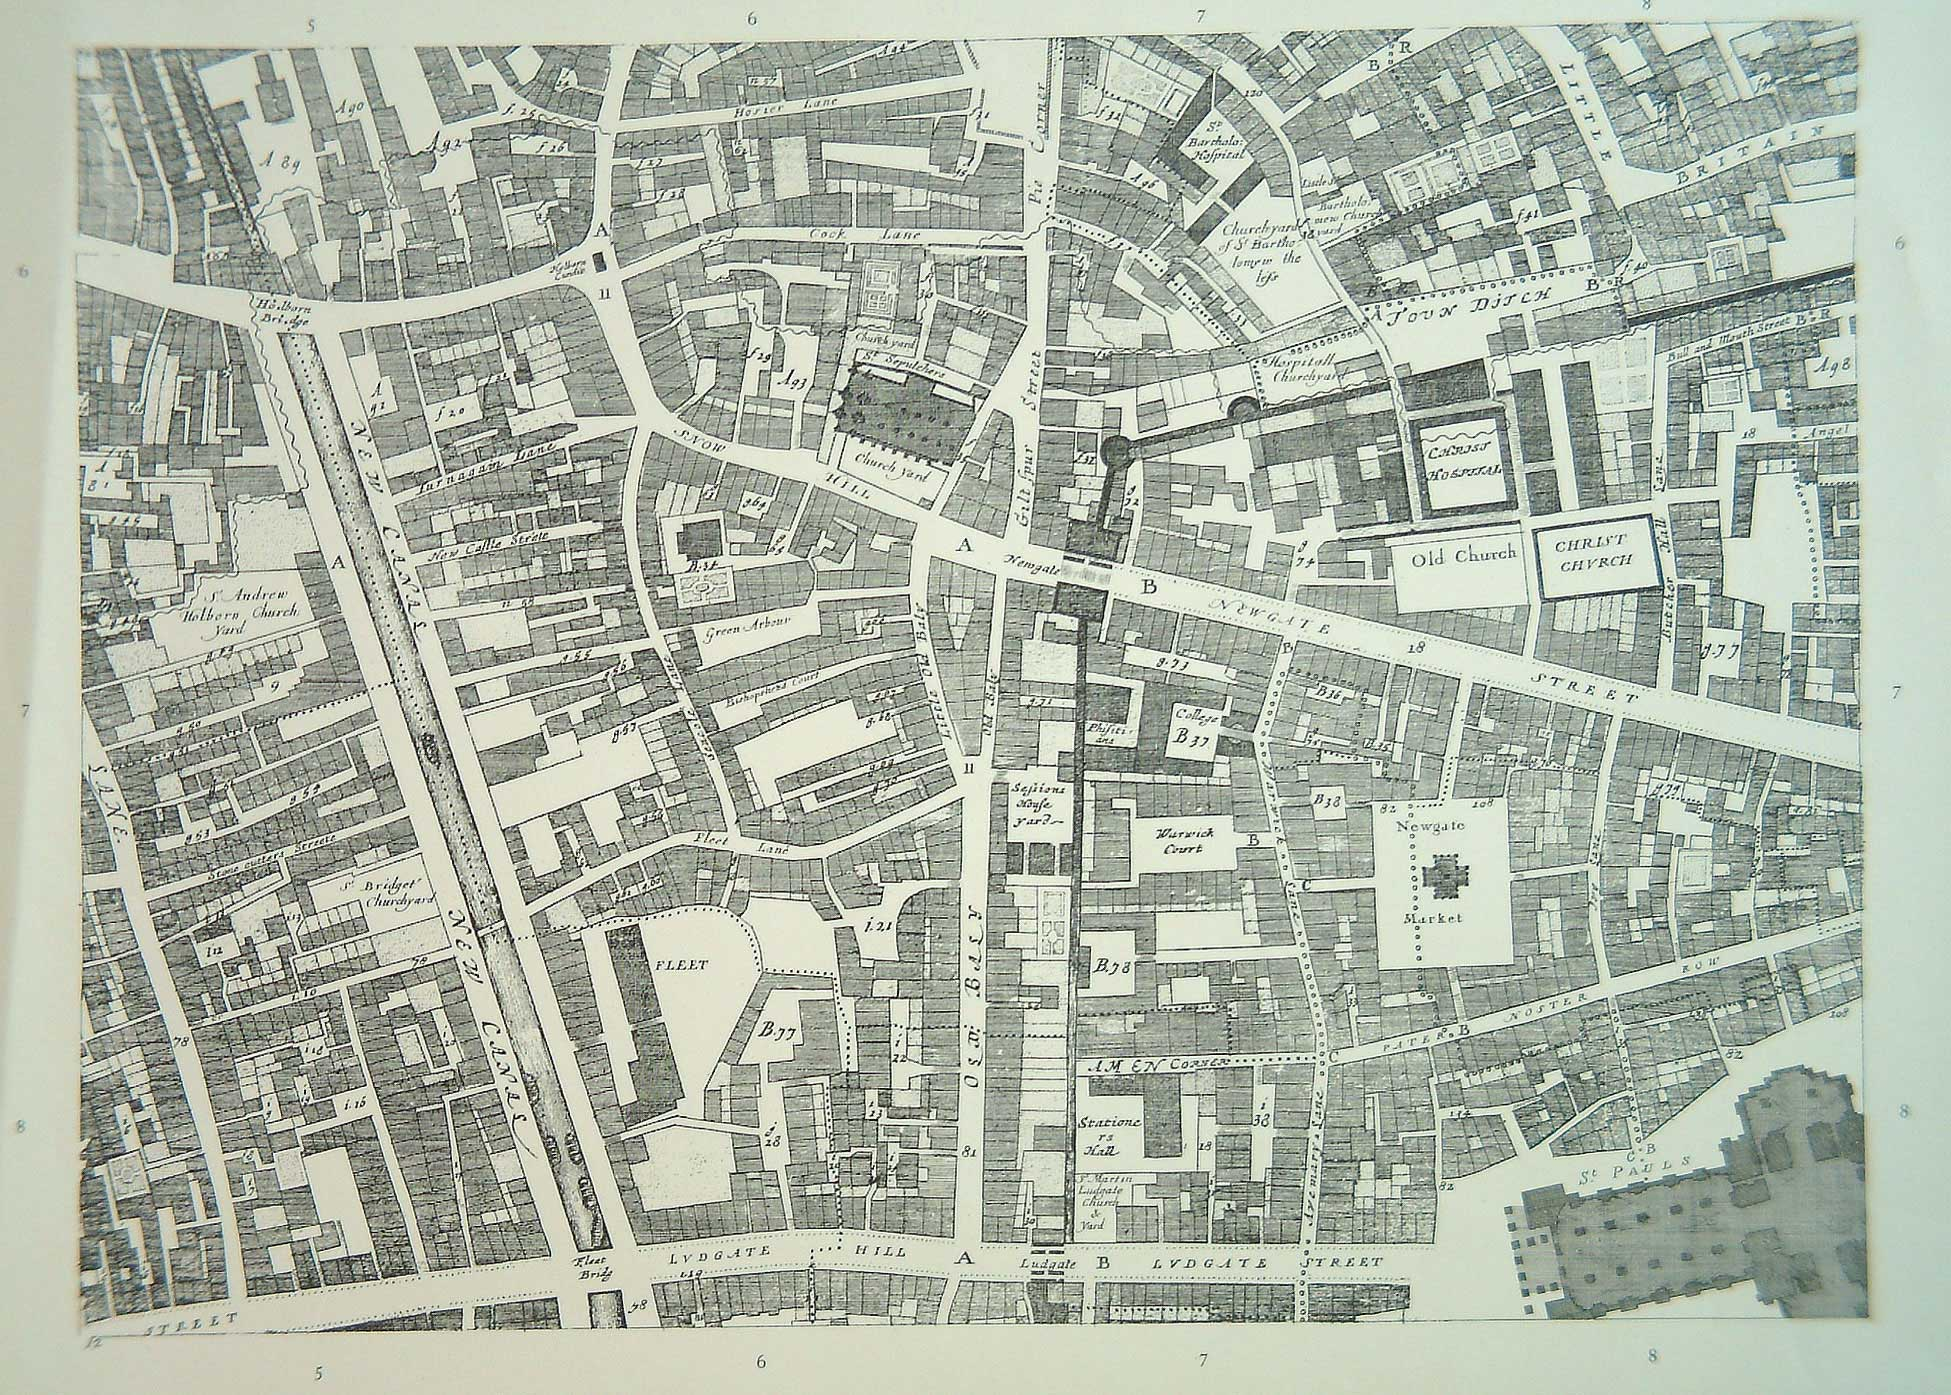 Glimpses of Londons Past Special Collections exhibition